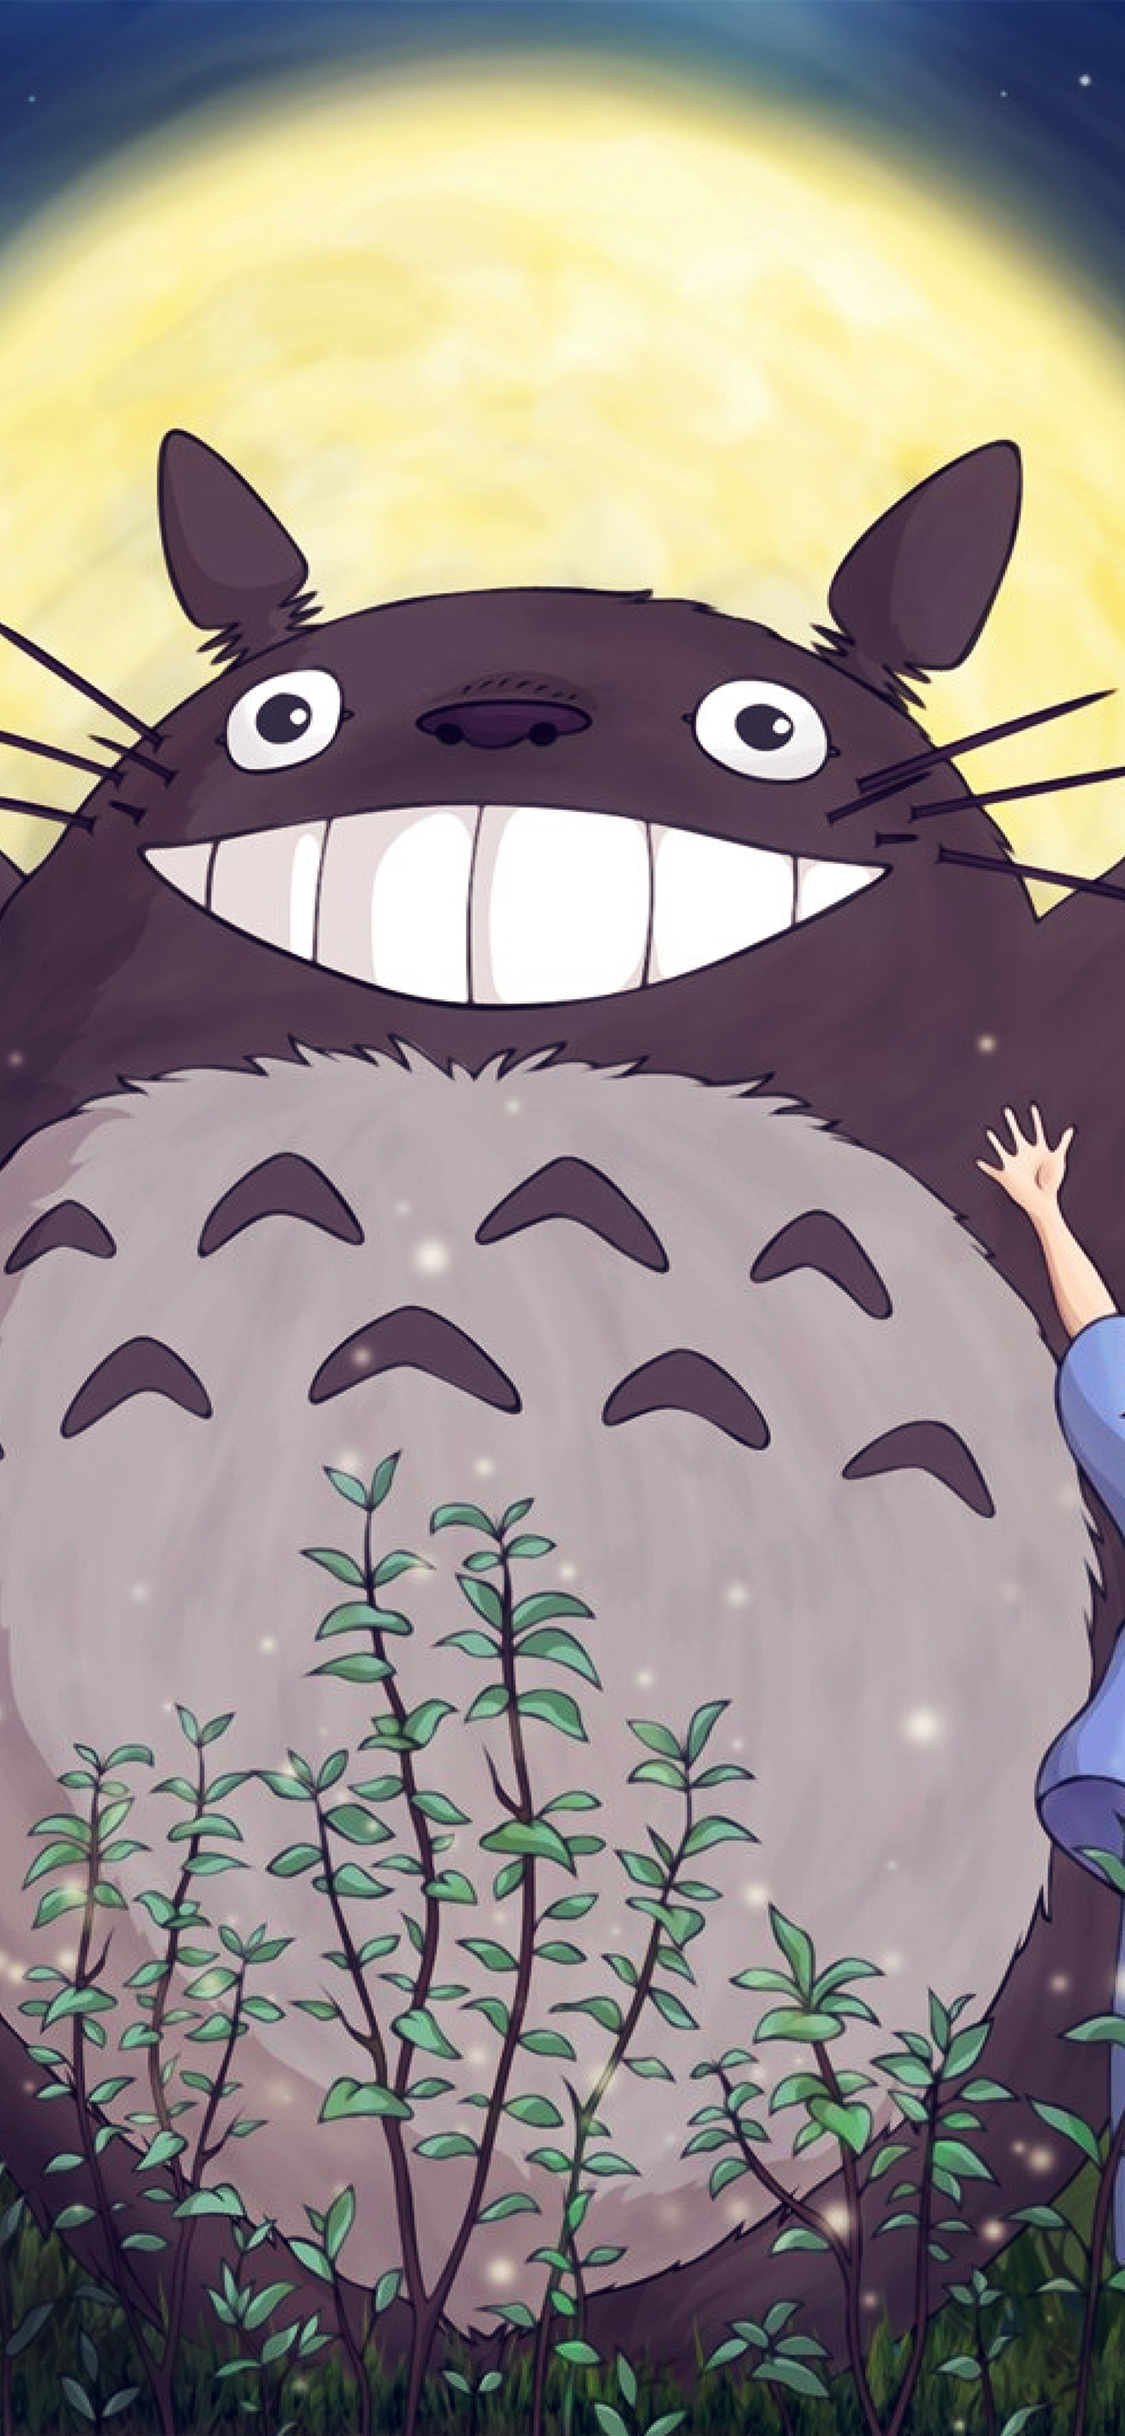 iPhoneXpapers.com-Apple-iPhone-wallpaper-au60-totoro-forest-anime-cute-illustration-art-blue